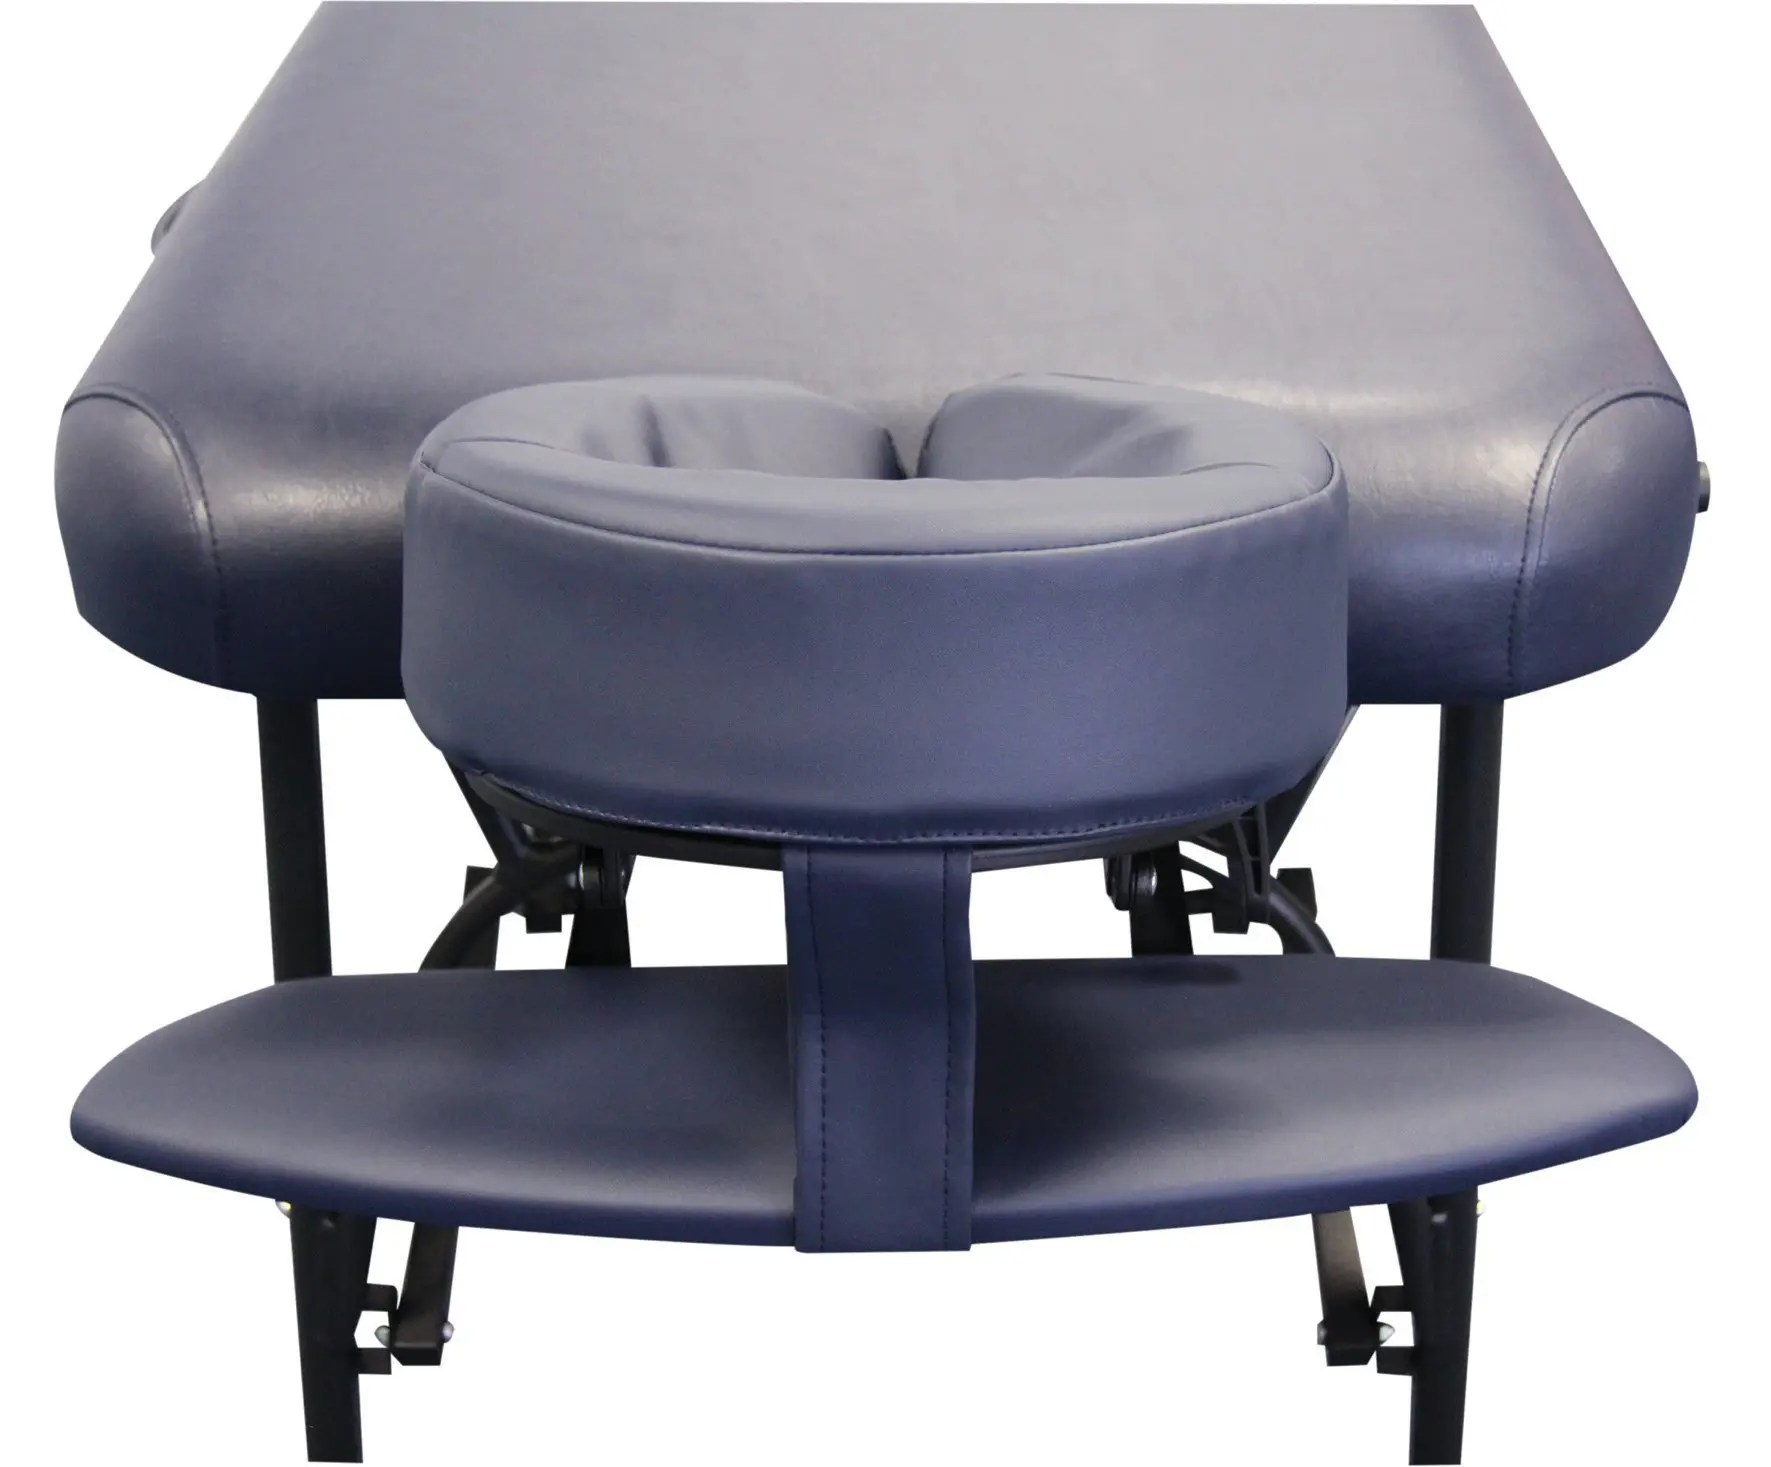 sanyo massage chair covers for hire auckland affinity power therapist face cradle body shop